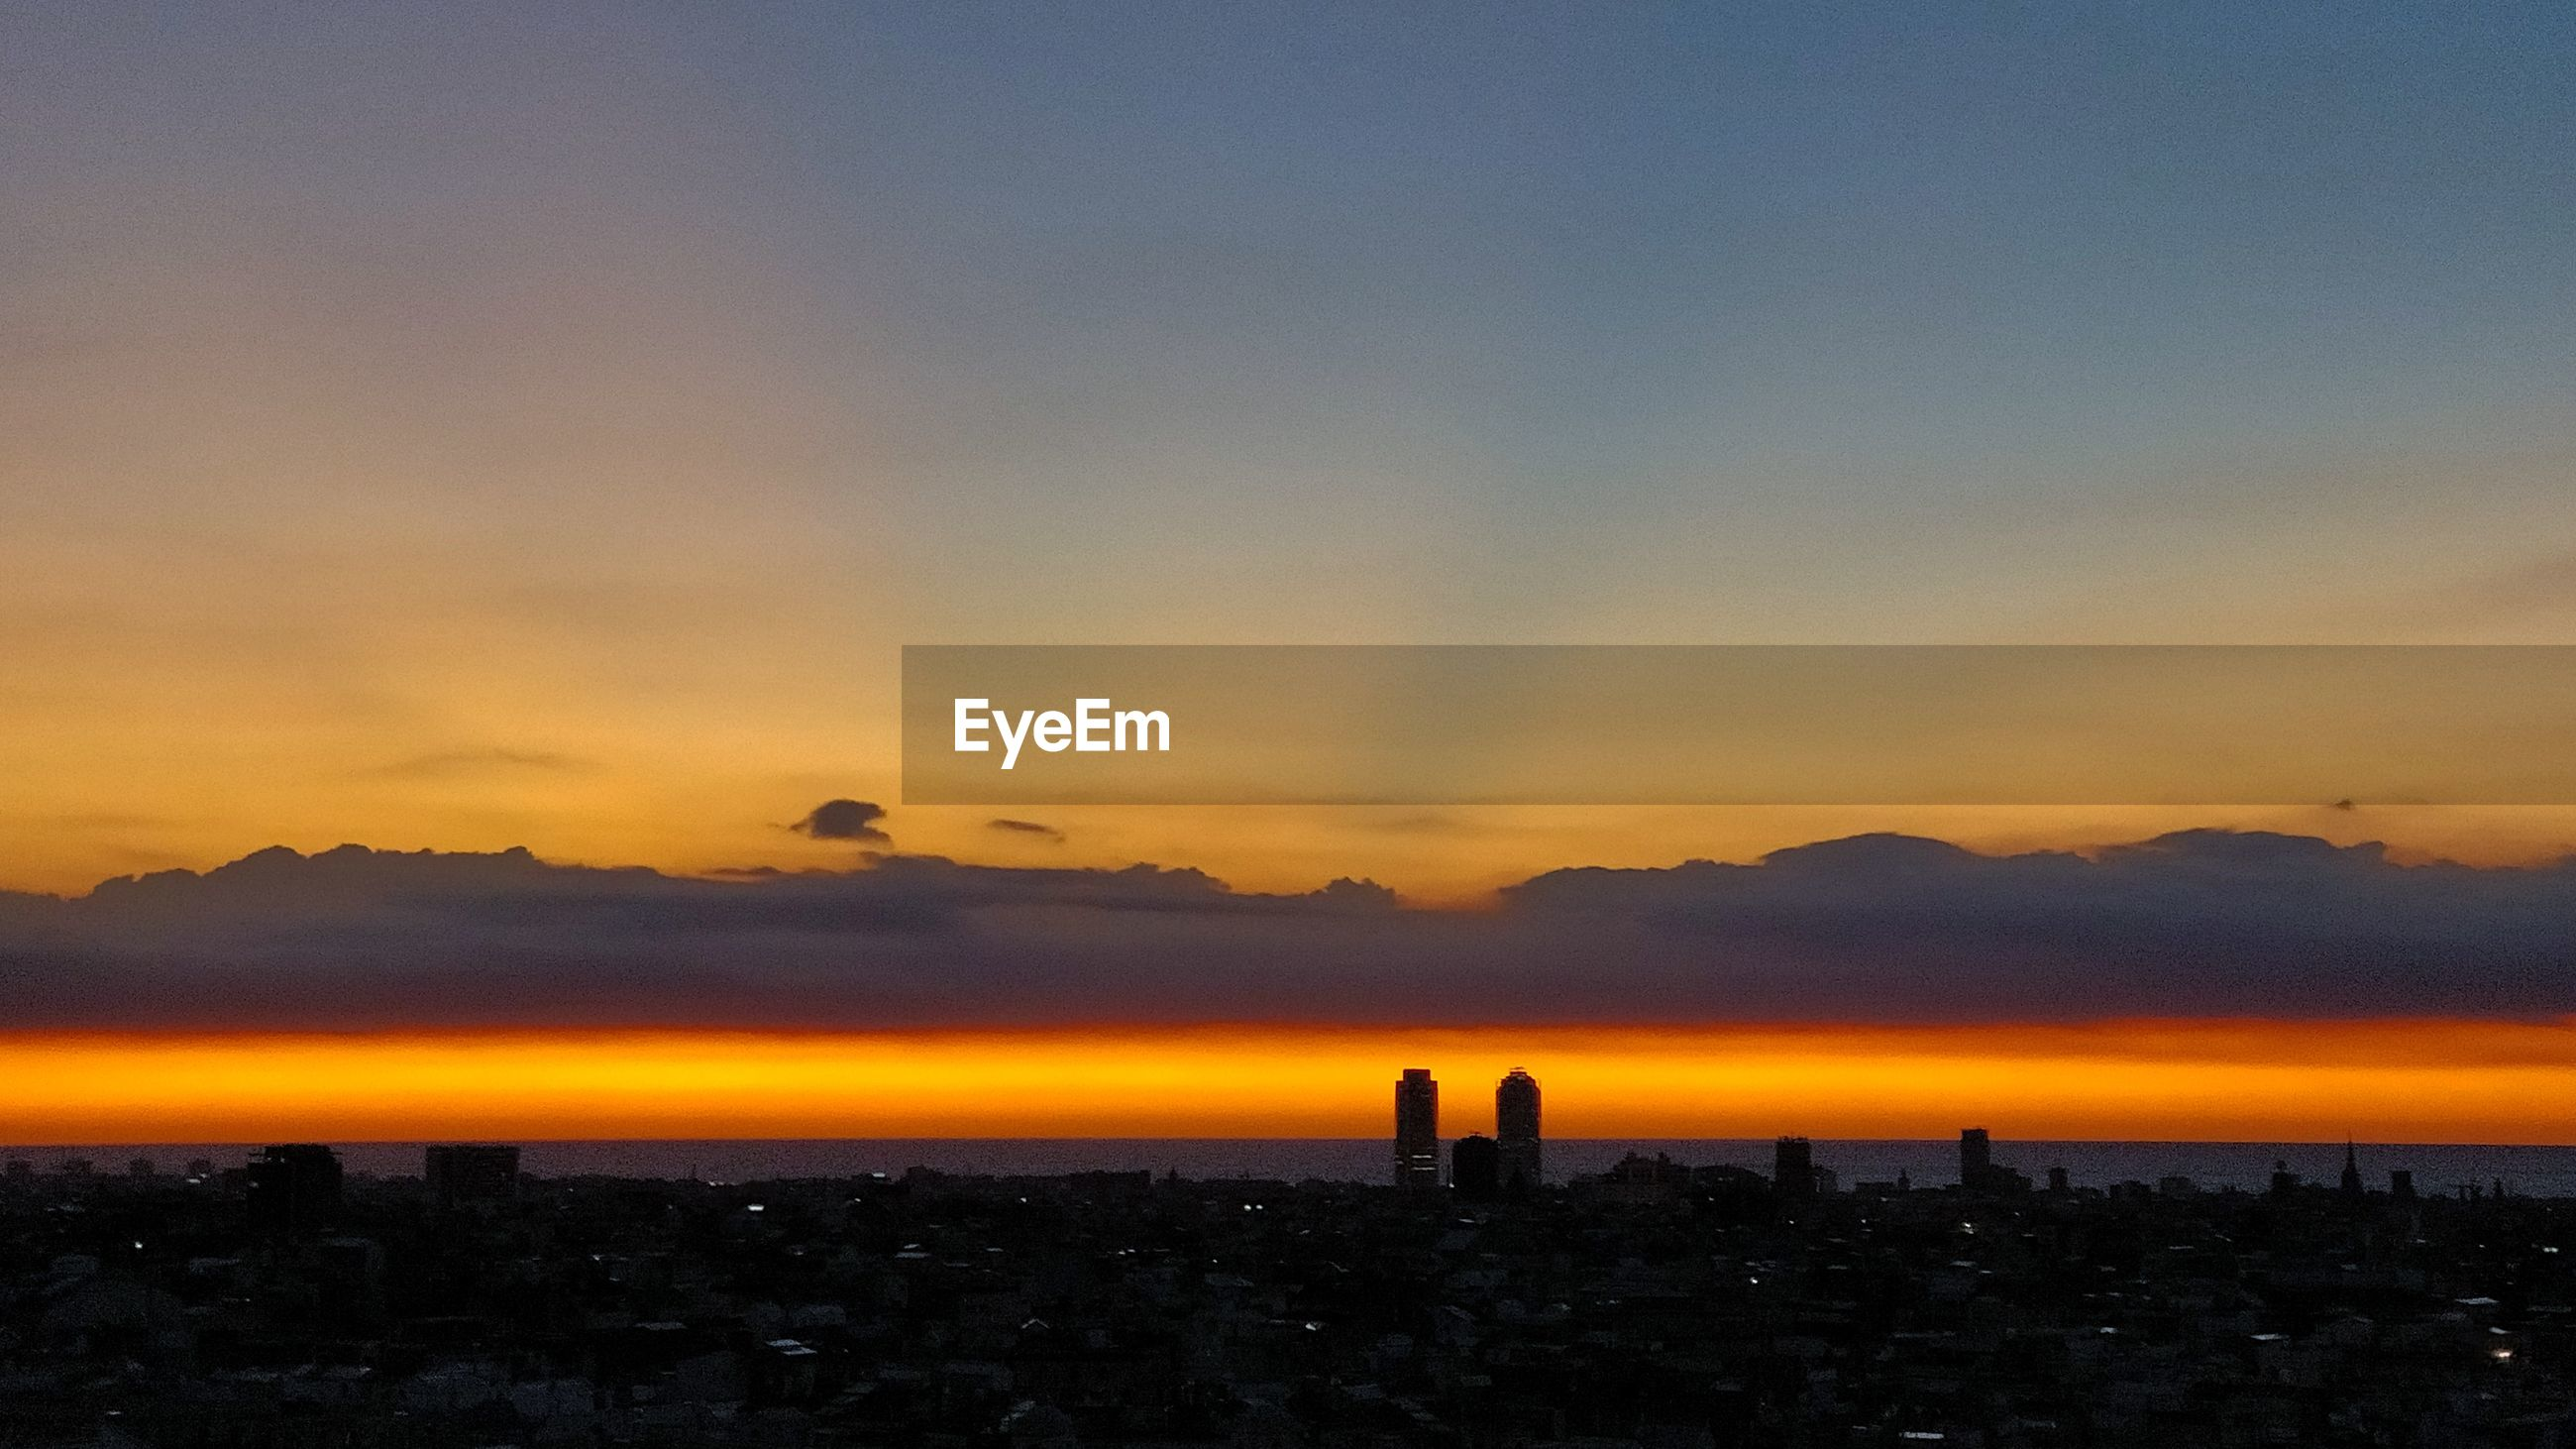 SCENIC VIEW OF SILHOUETTE BUILDINGS AGAINST ROMANTIC SKY AT SUNSET